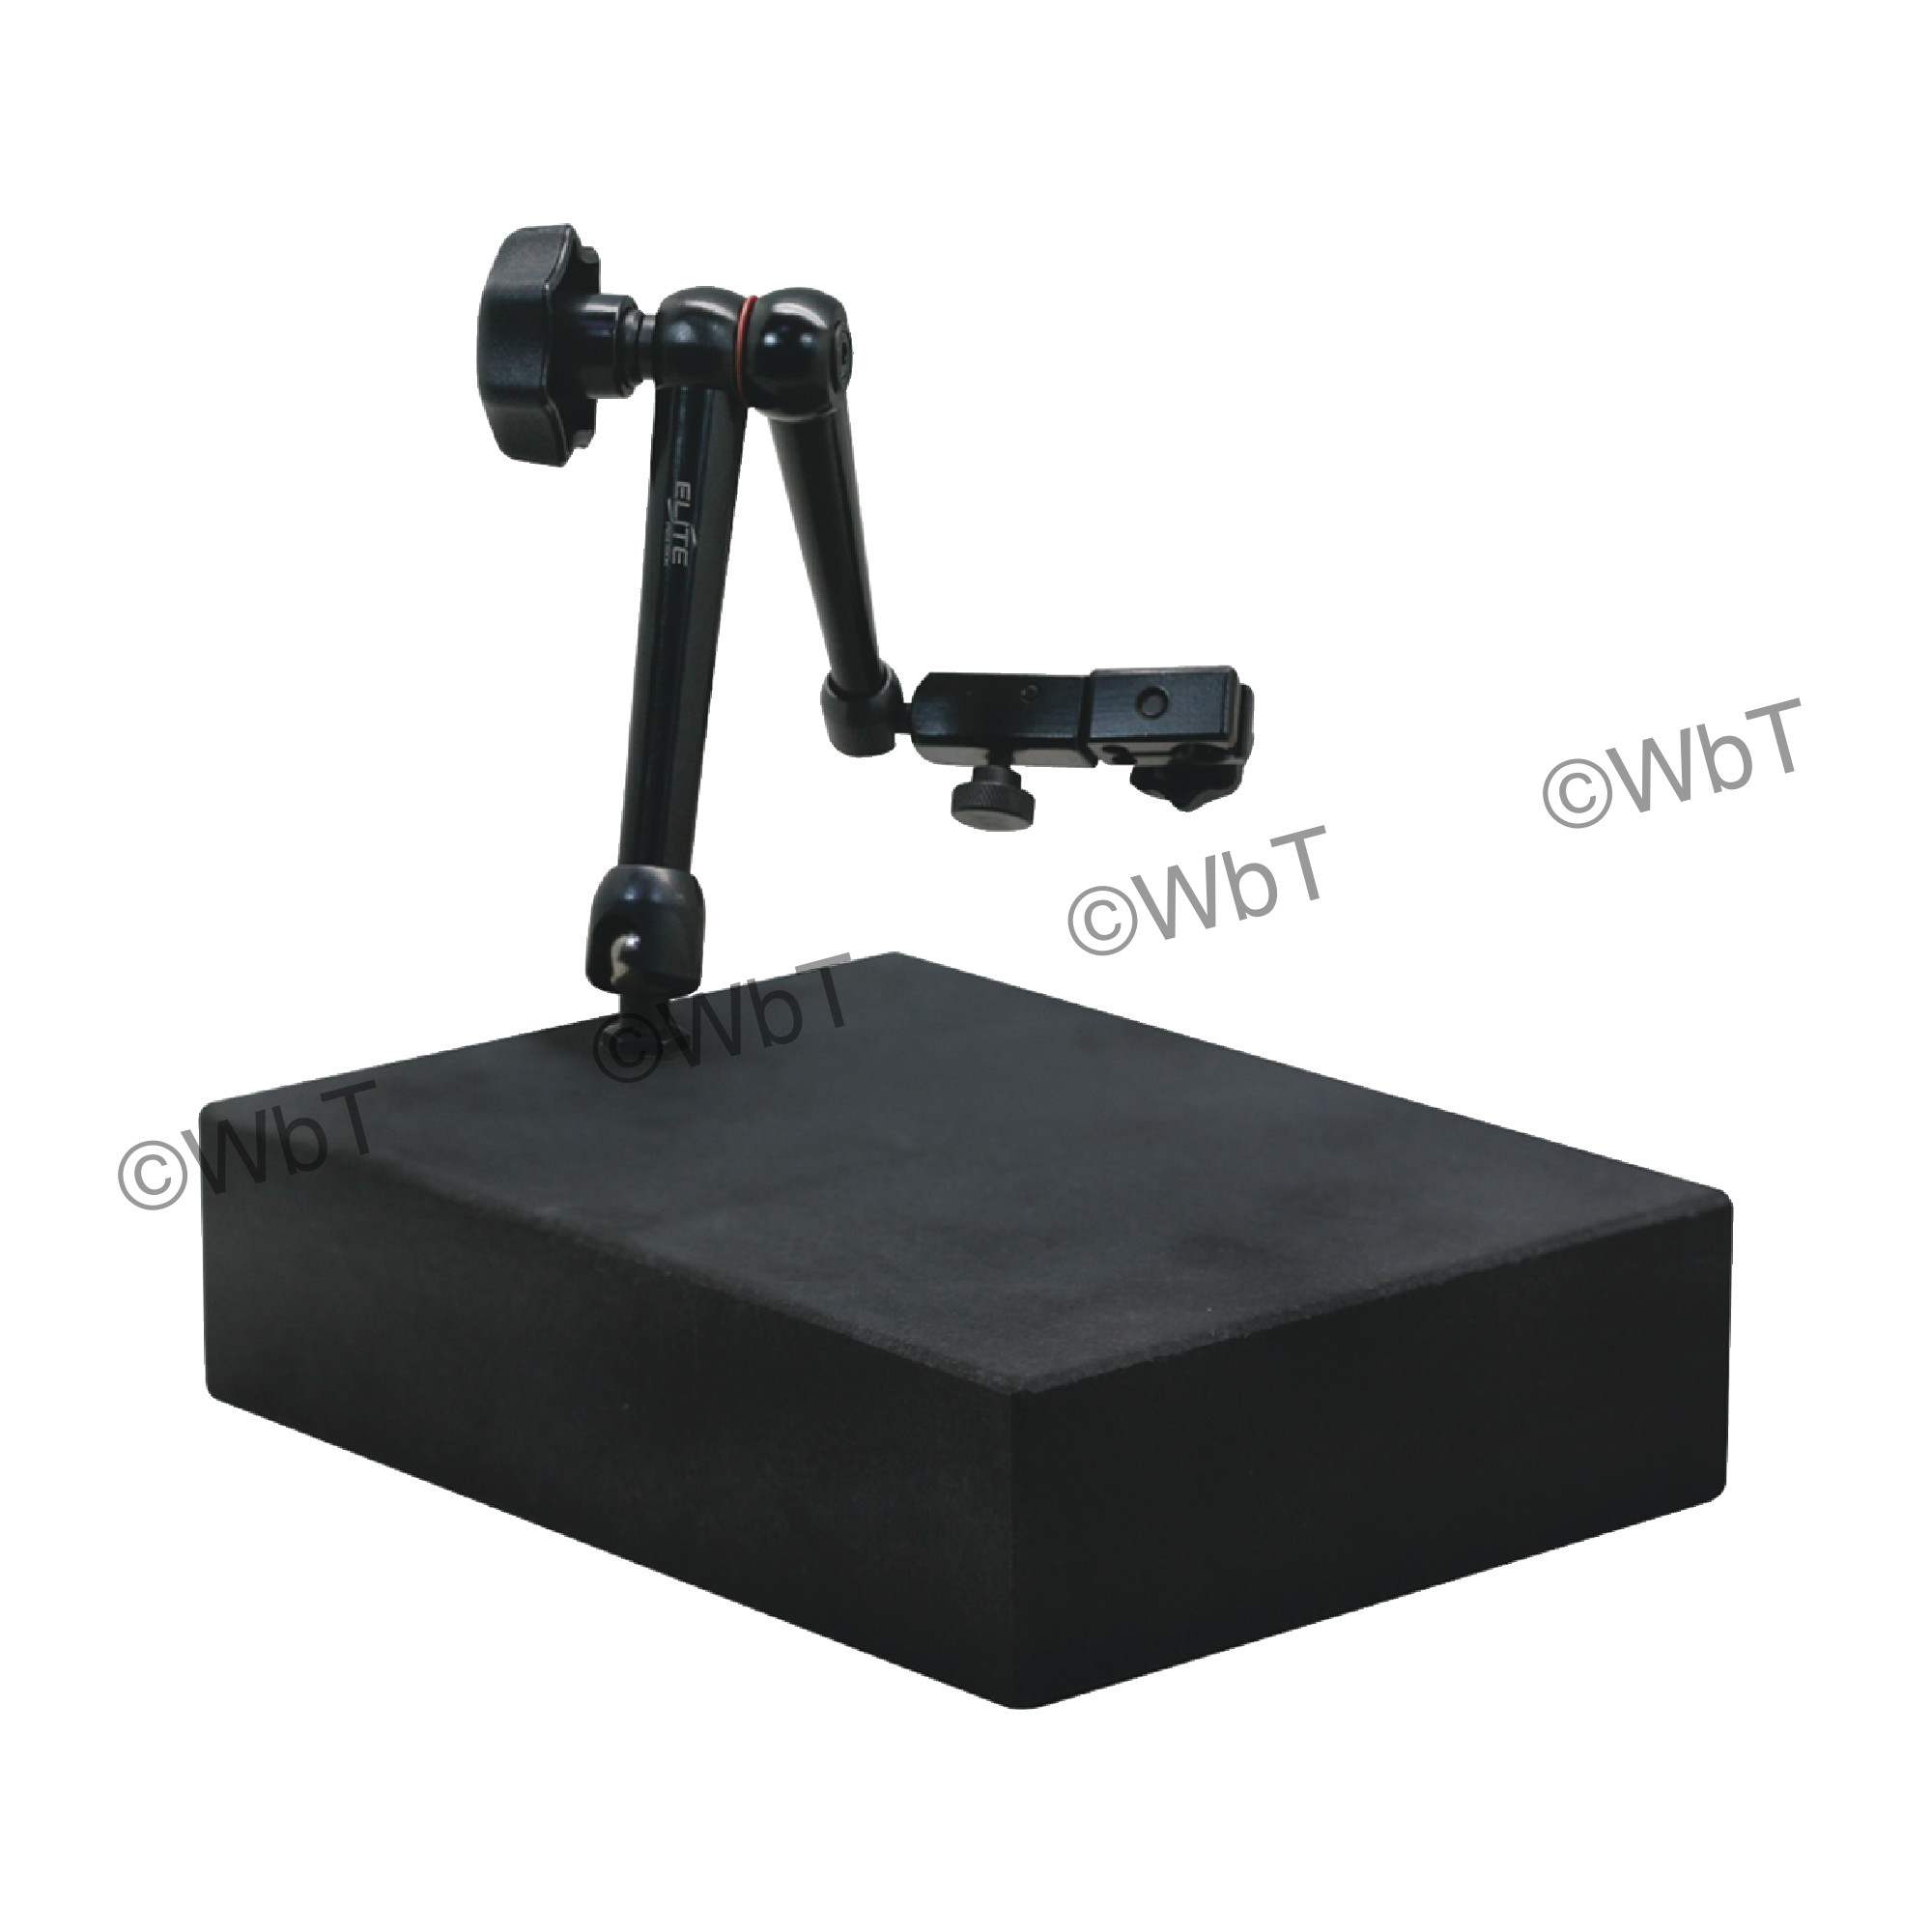 Granite Gage Stand with Flexible Arm